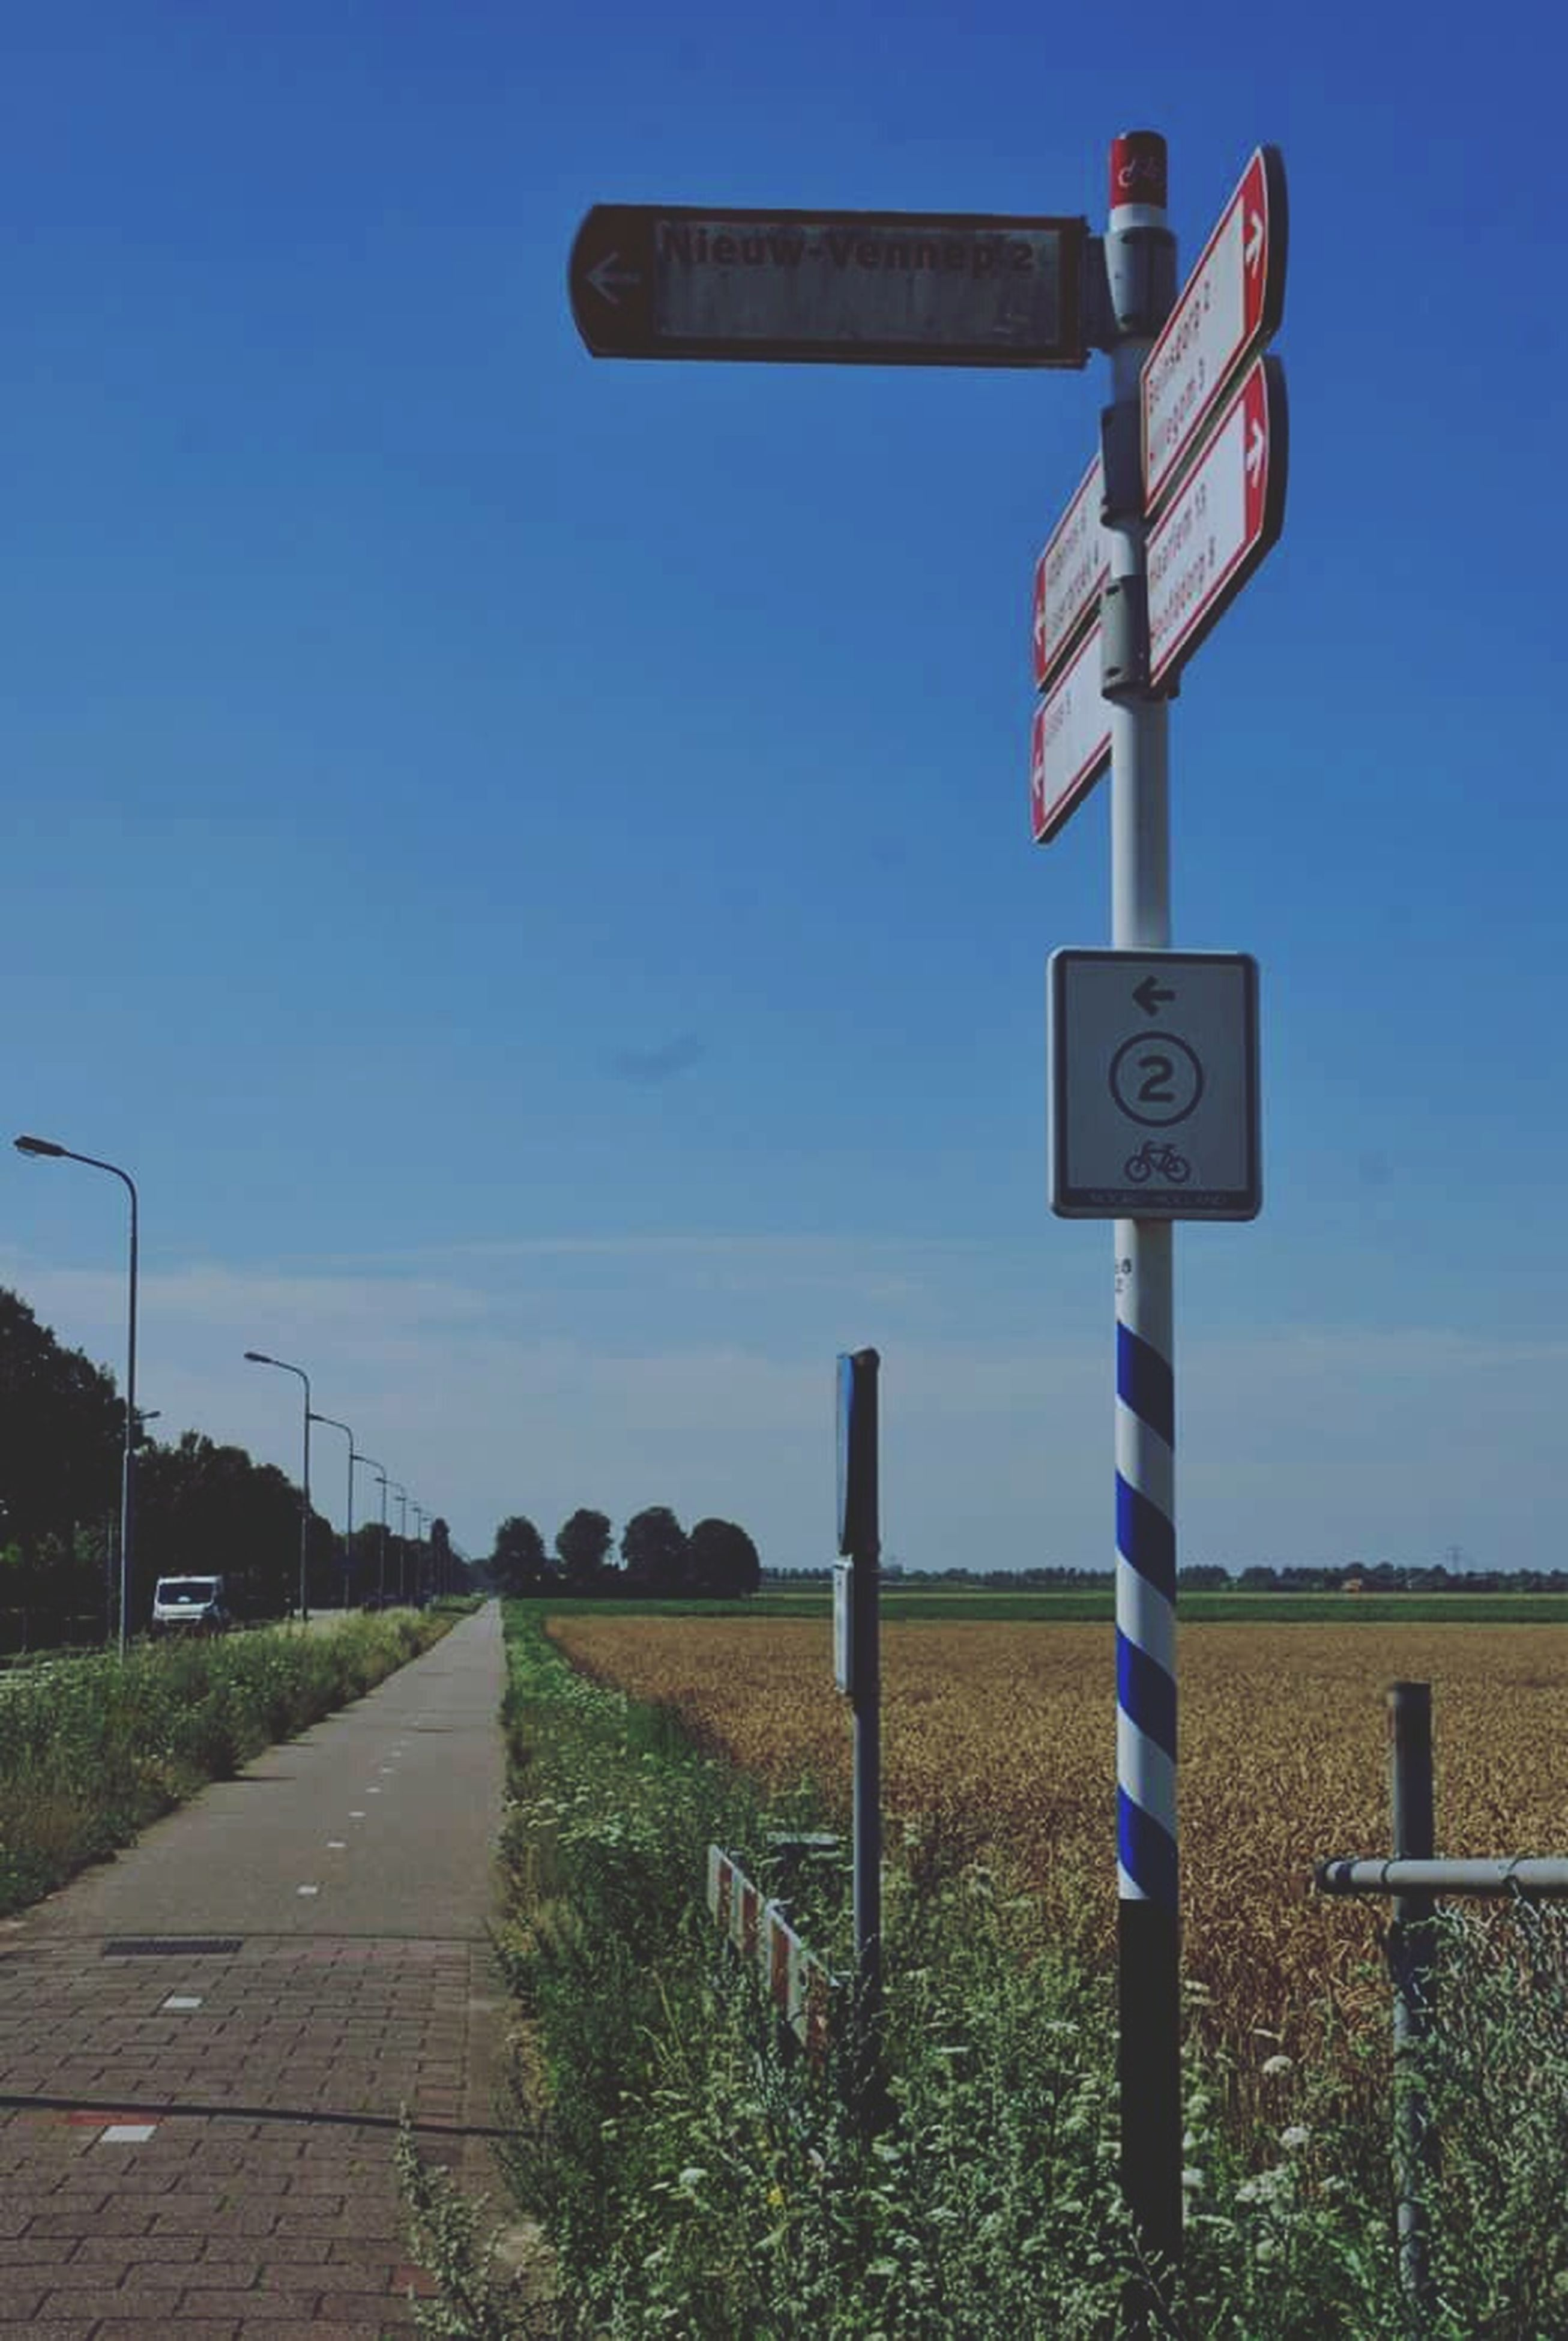 guidance, road sign, communication, blue, clear sky, sign, direction, information sign, arrow symbol, grass, text, western script, field, directional sign, sky, copy space, landscape, pole, road, the way forward